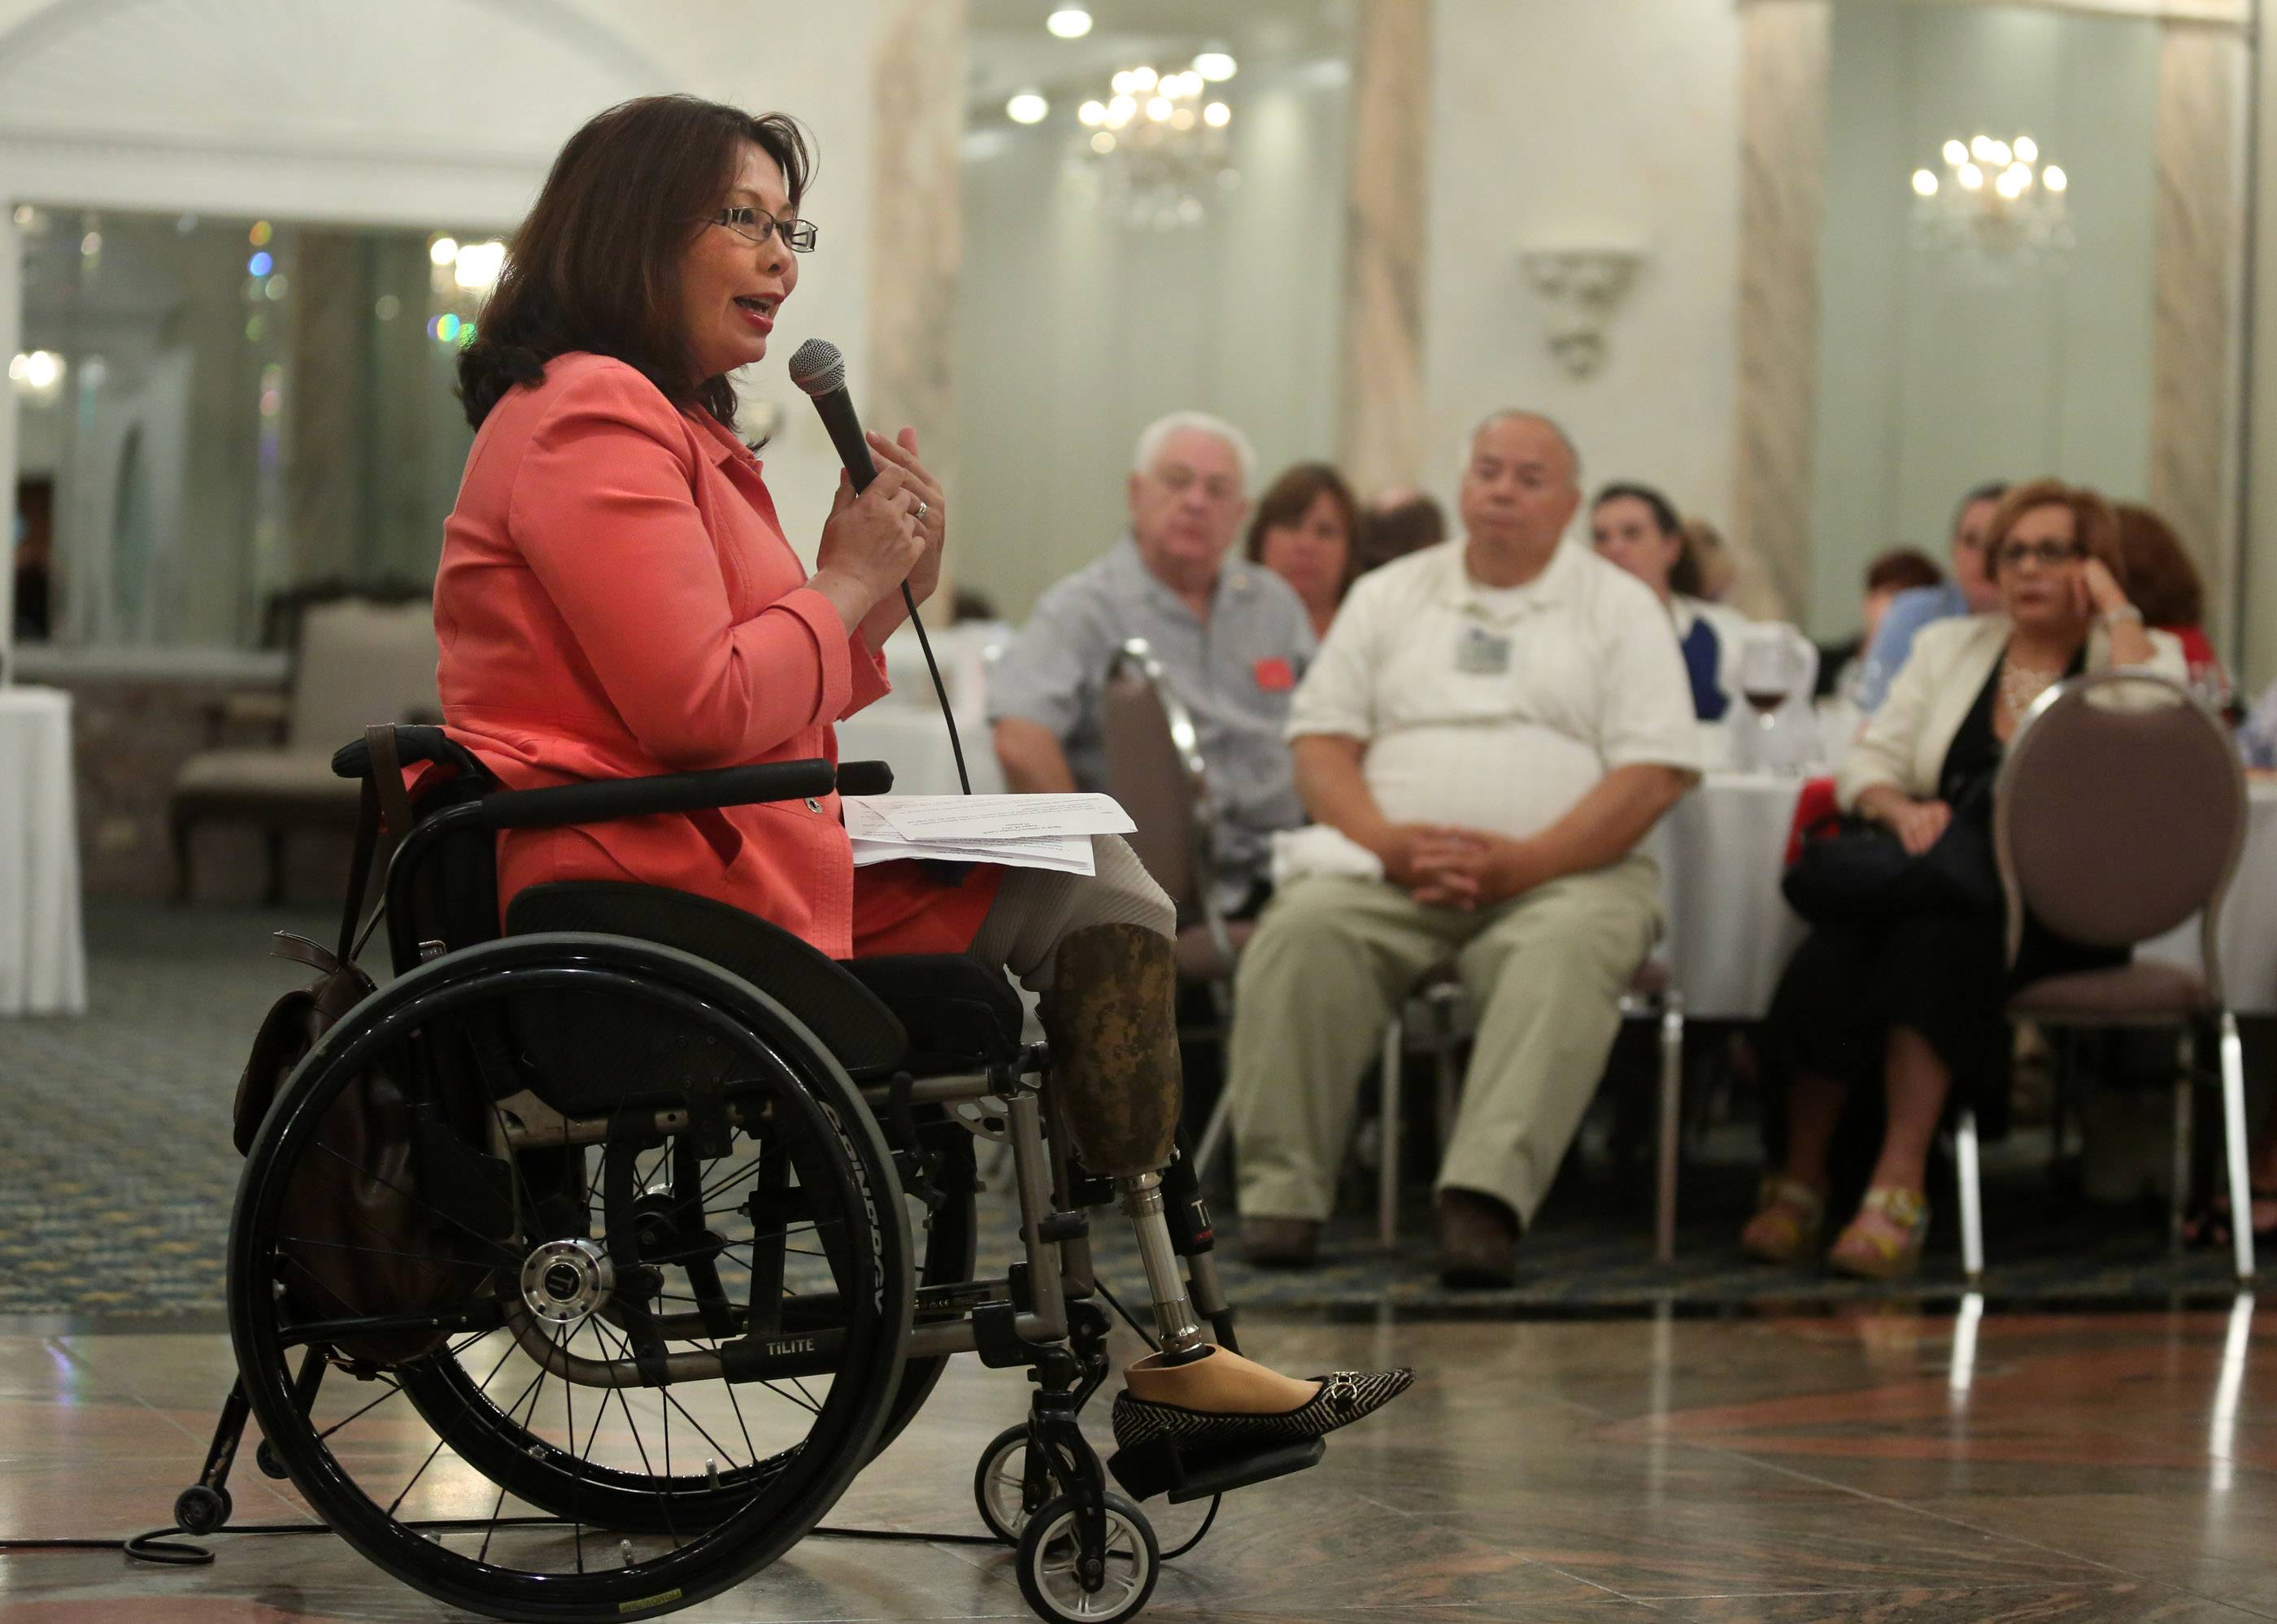 Images: Tammy Duckworth in the Suburbs